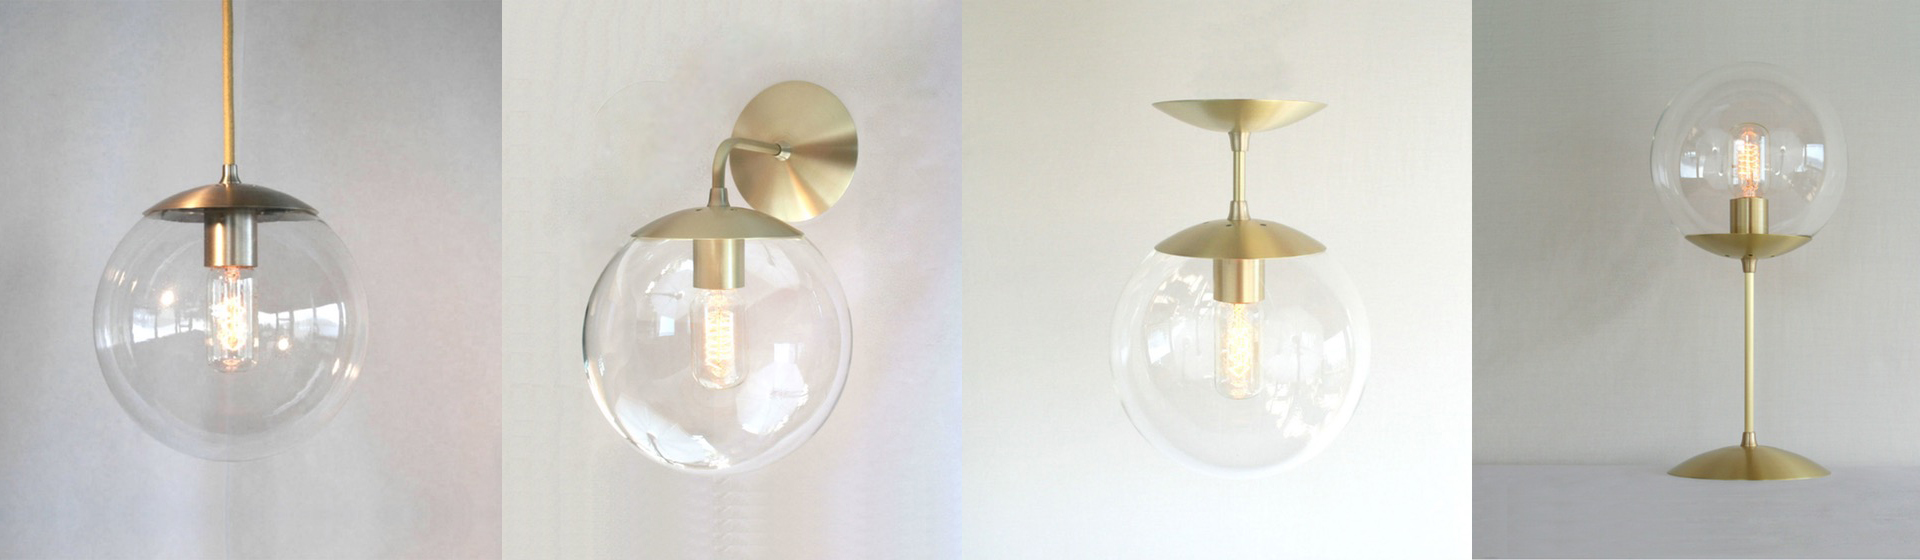 Round glass ball lighting fixture